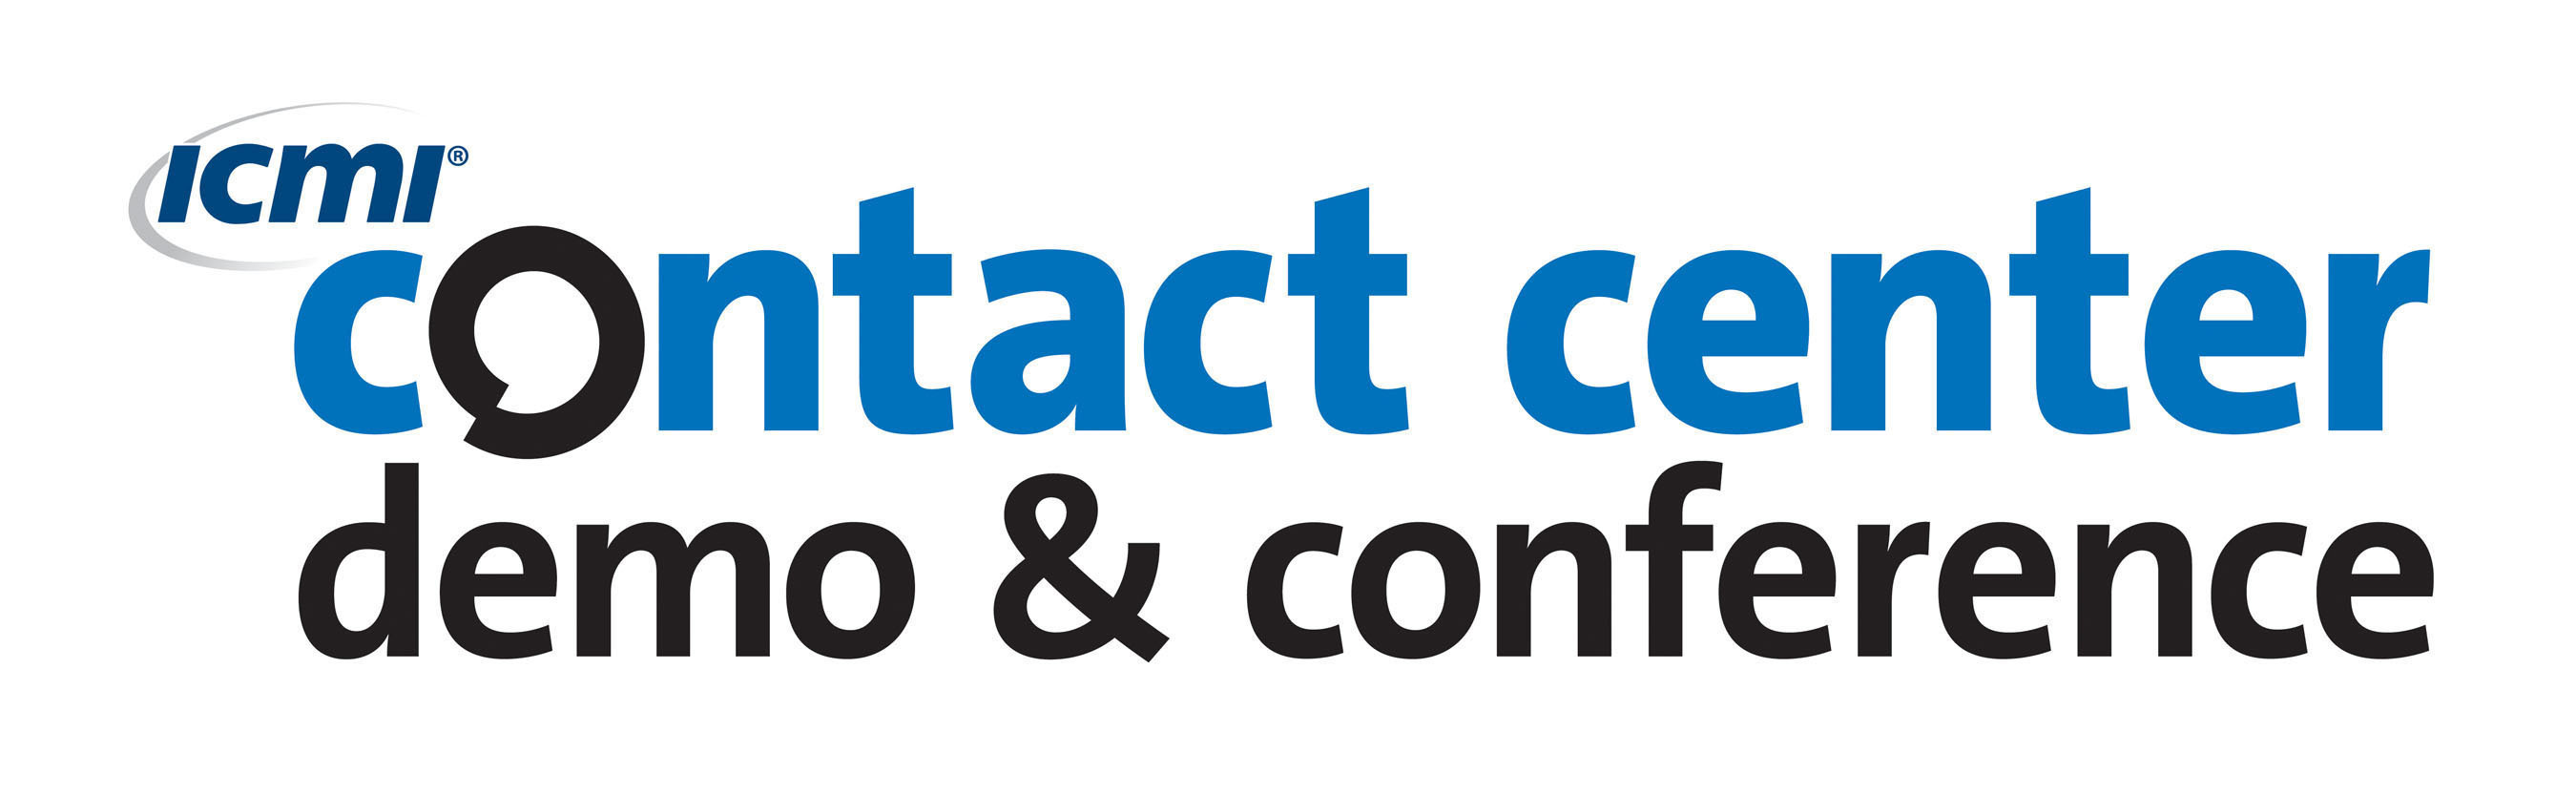 The 2015 Contact Center Demo & Conference will take place October 19-21, 2015, at the Rio in Las Vegas, Nevada.